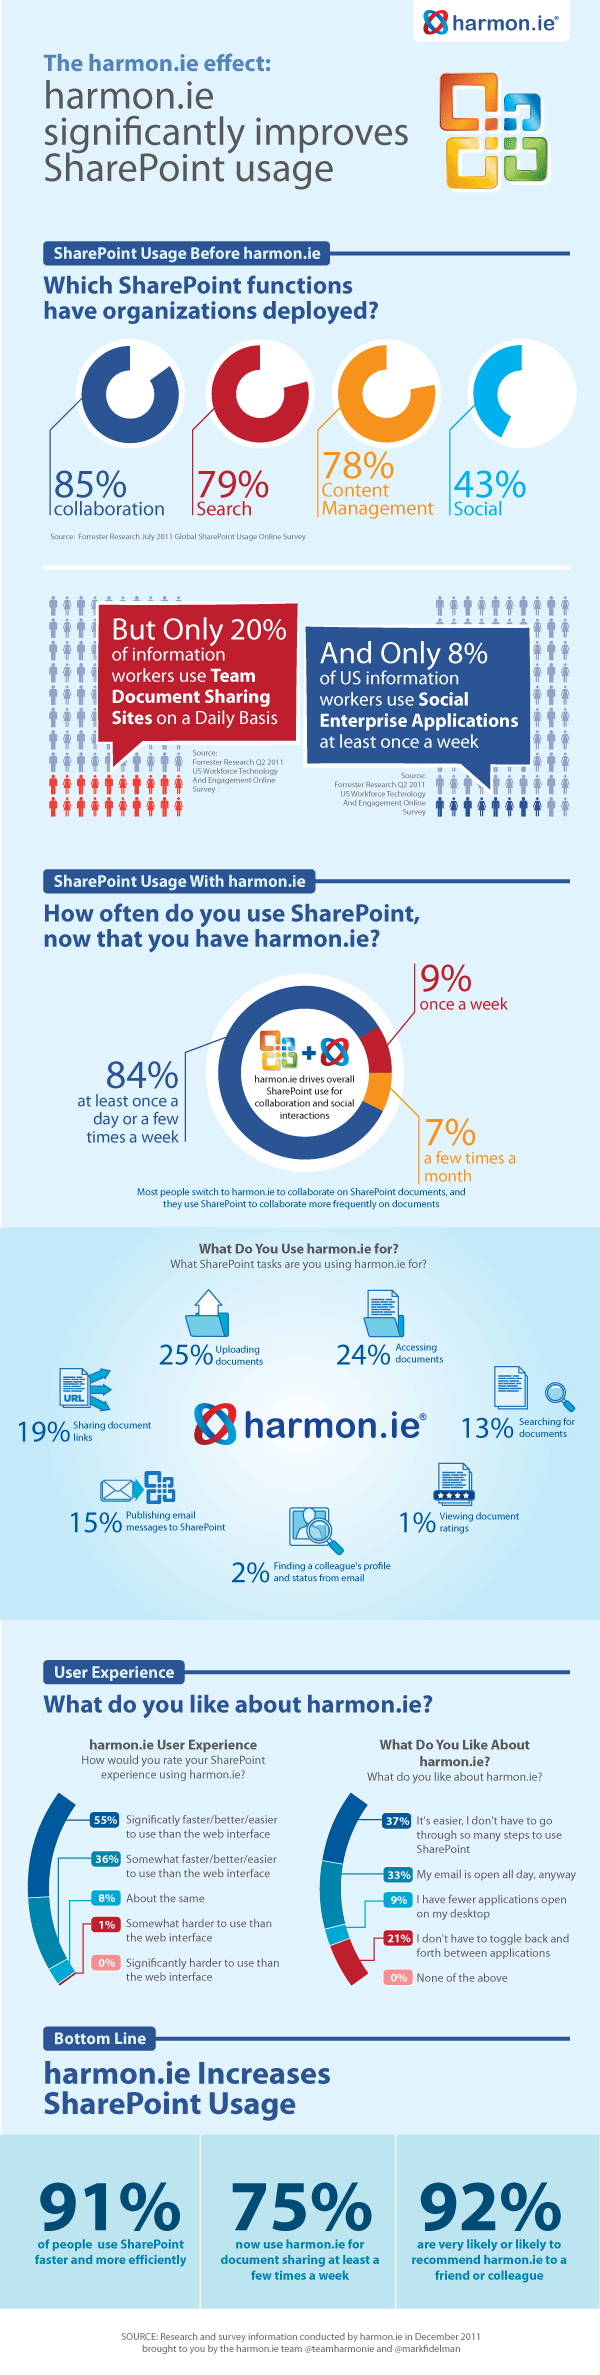 SharePoint - Before and After harmon.ie